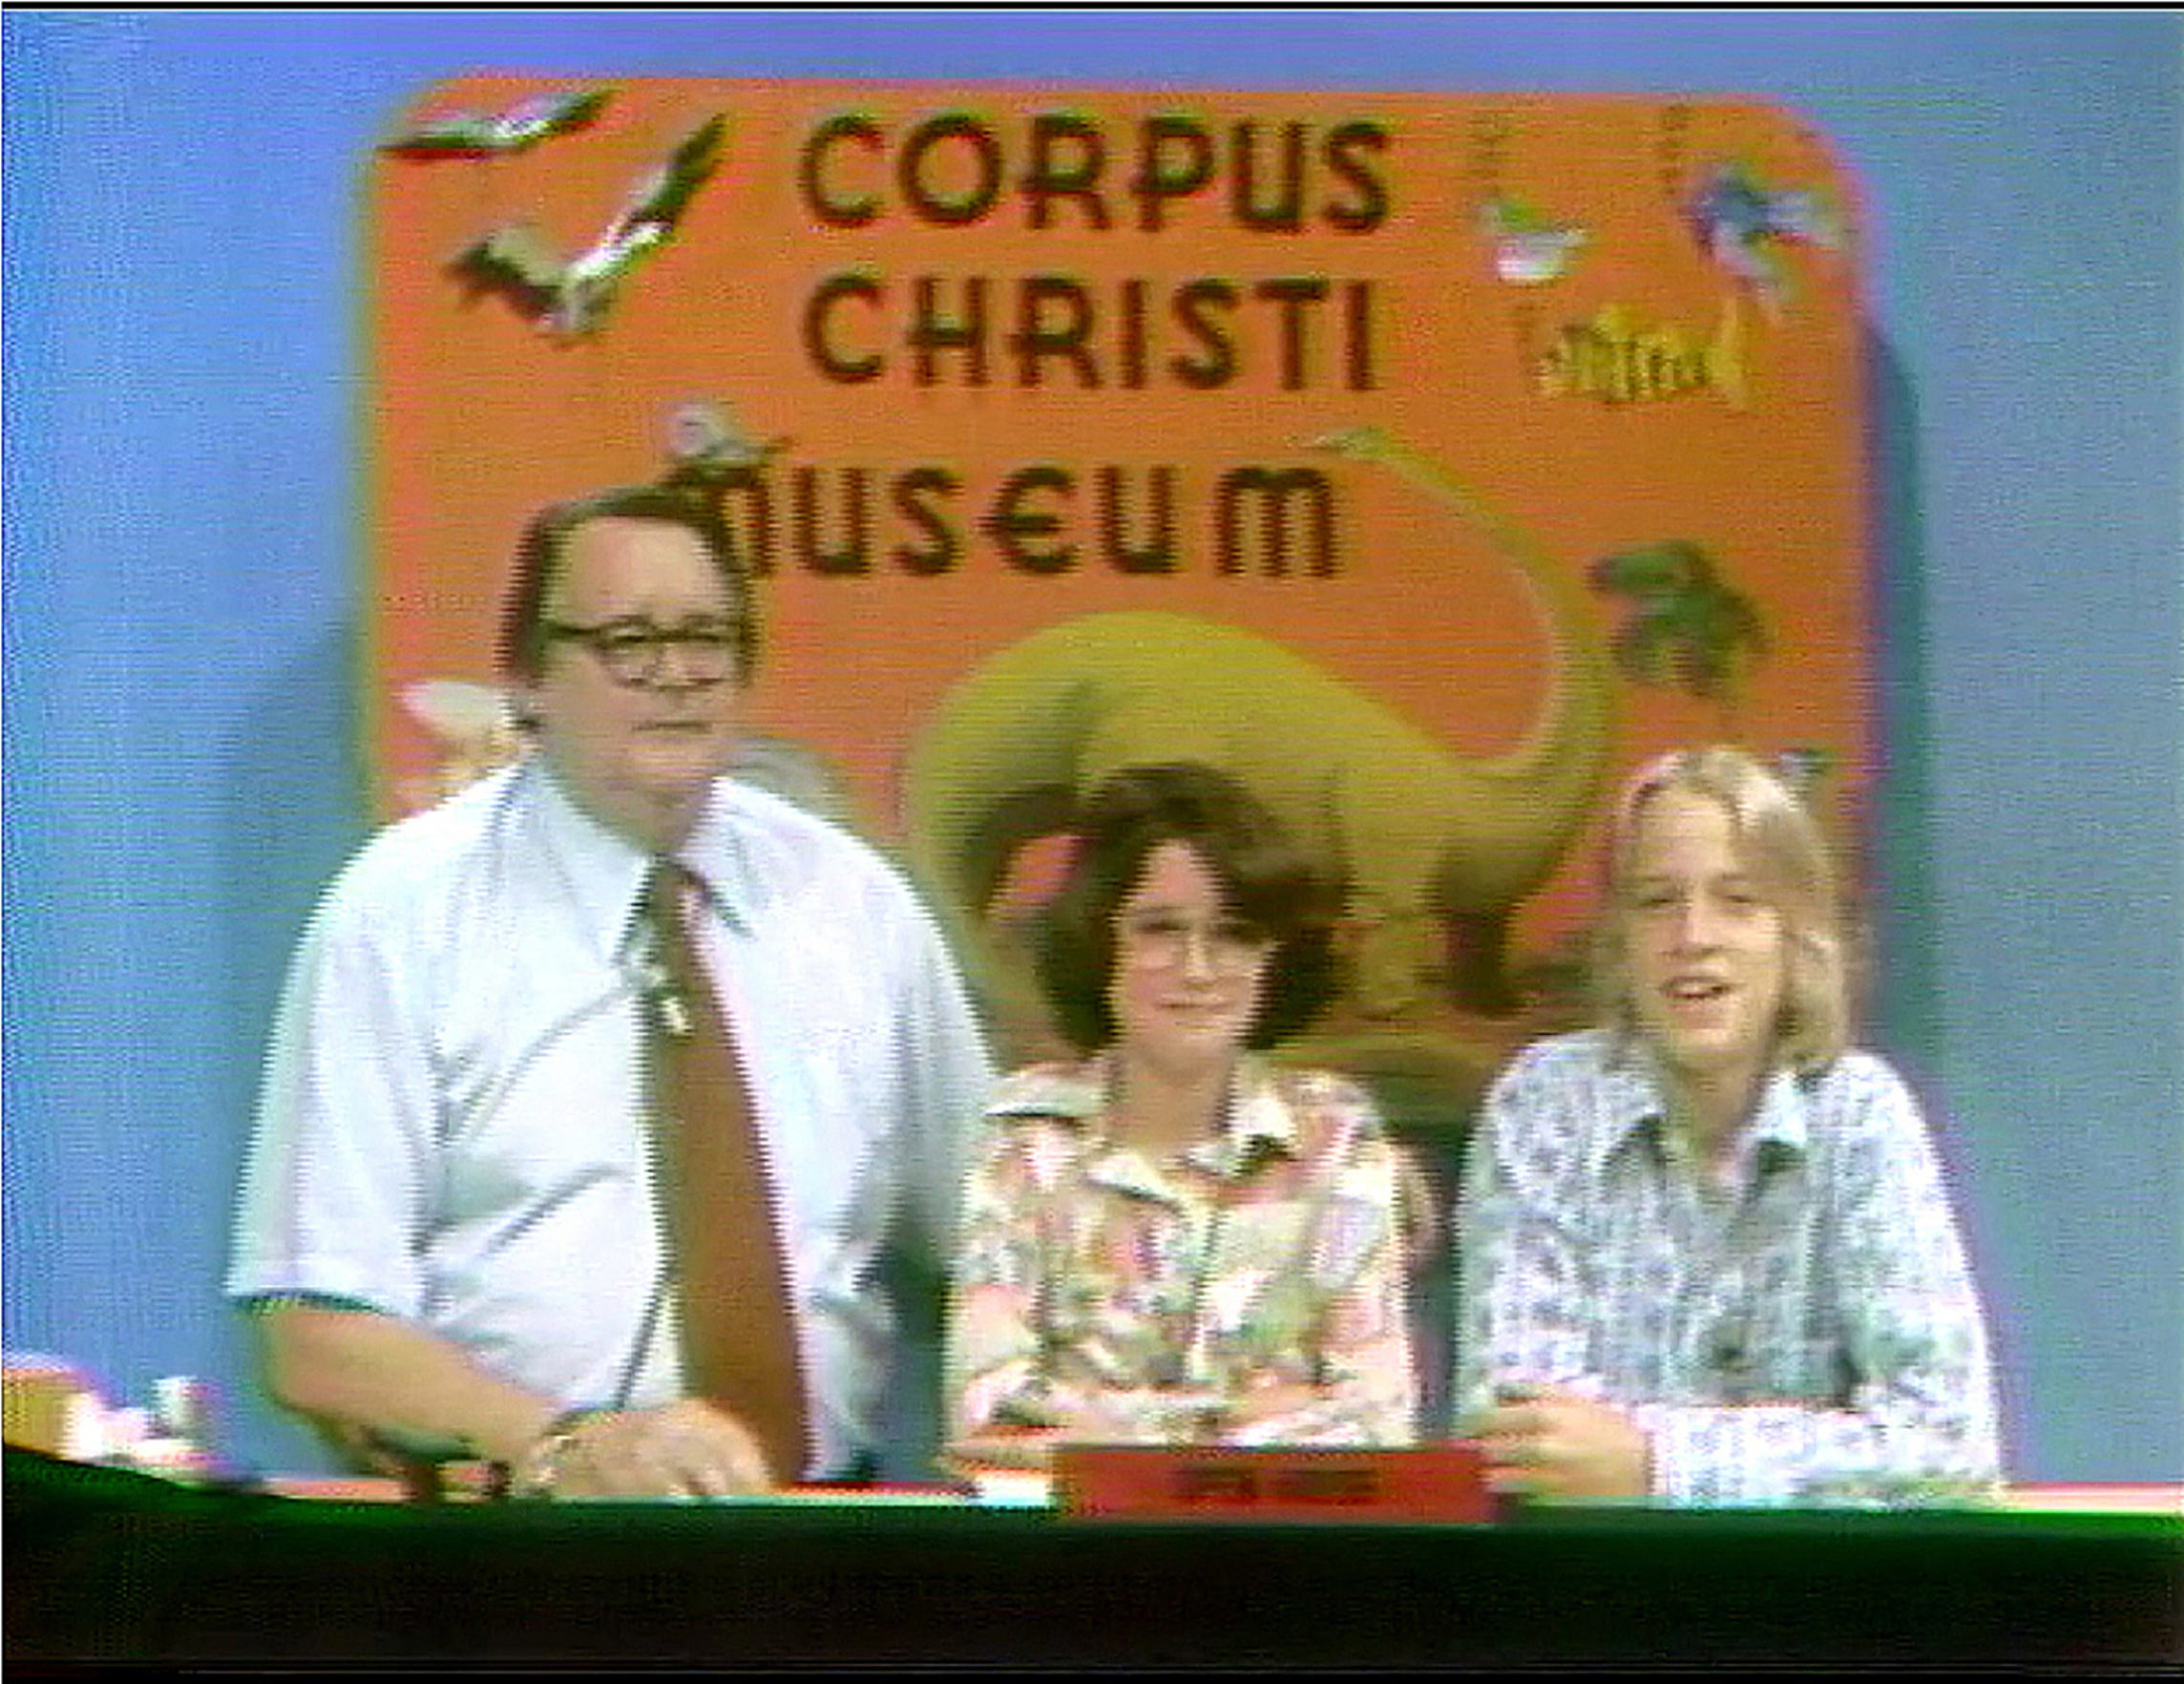 Corpus Christi Museum director Aalbert Heine (left) hosted a weekly show discussing the museum exhibits from the late 1950s to 1984. The show's guests were local kids, like Courtney Barker (center) and Steve Canine (right) in this screengrab from a vintage episode.